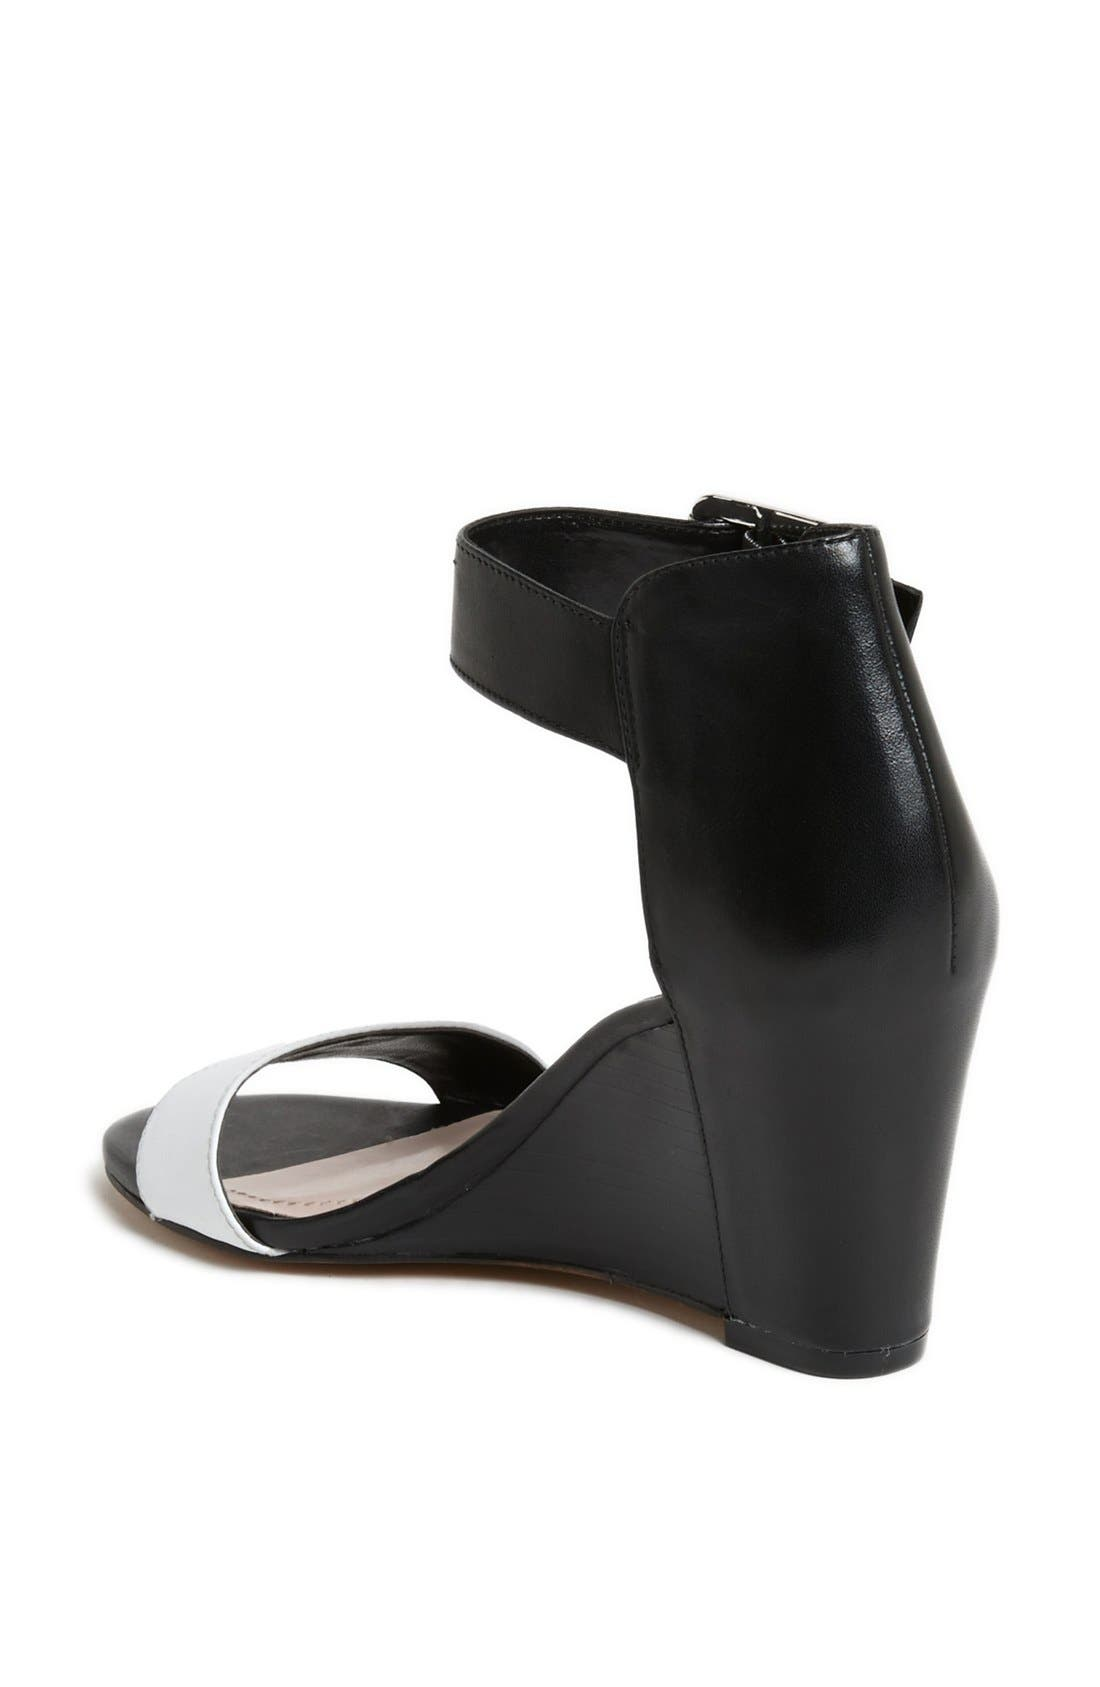 Alternate Image 2  - Vince Camuto 'Luciah' Ankle Strap Wedge Sandal